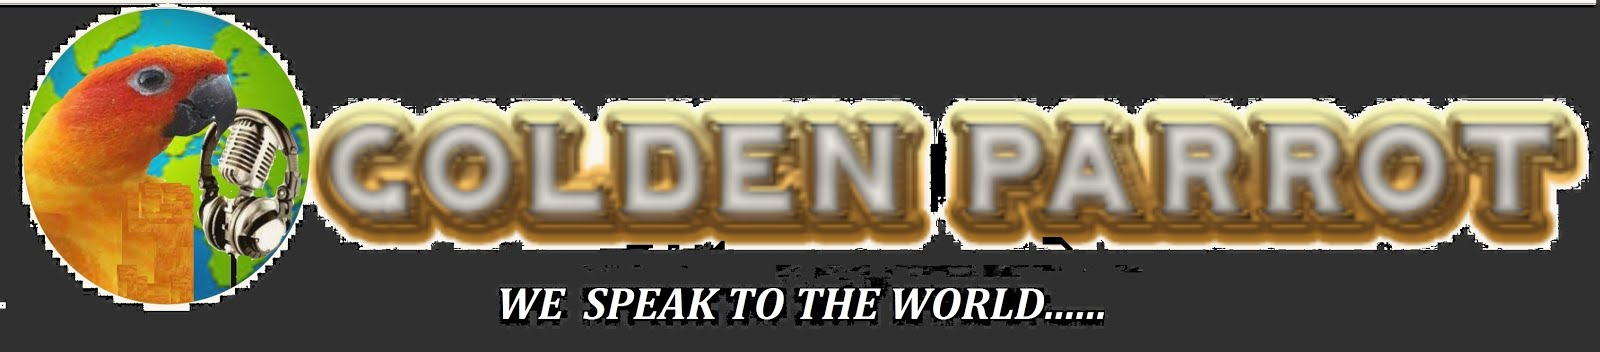 GOLDEN   PARROT    | We Speaks To The World .